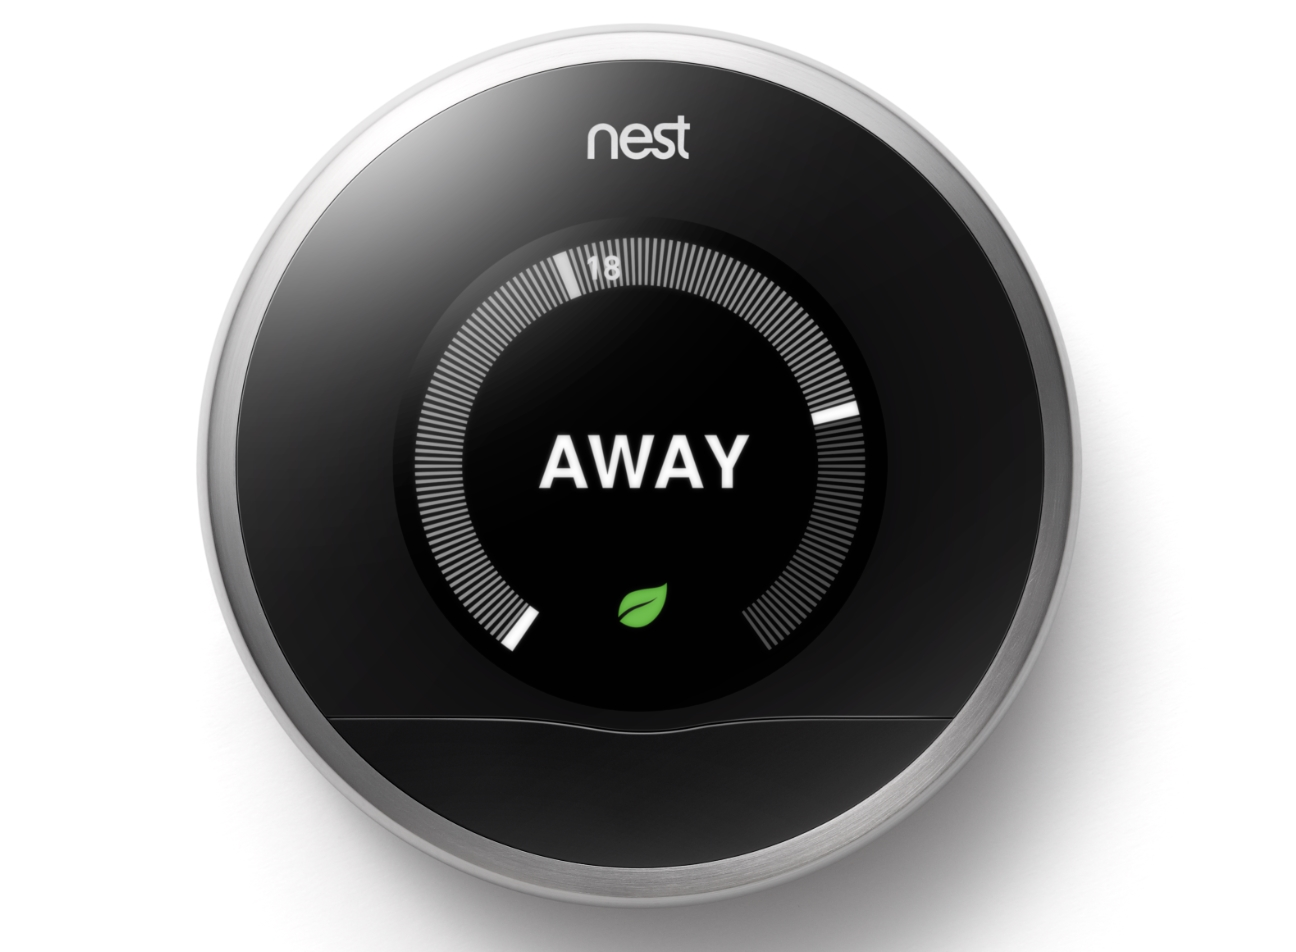 Nest 39 s smart thermostat is now available to buy in the uk - Nest thermostat stylish home temperature control ...